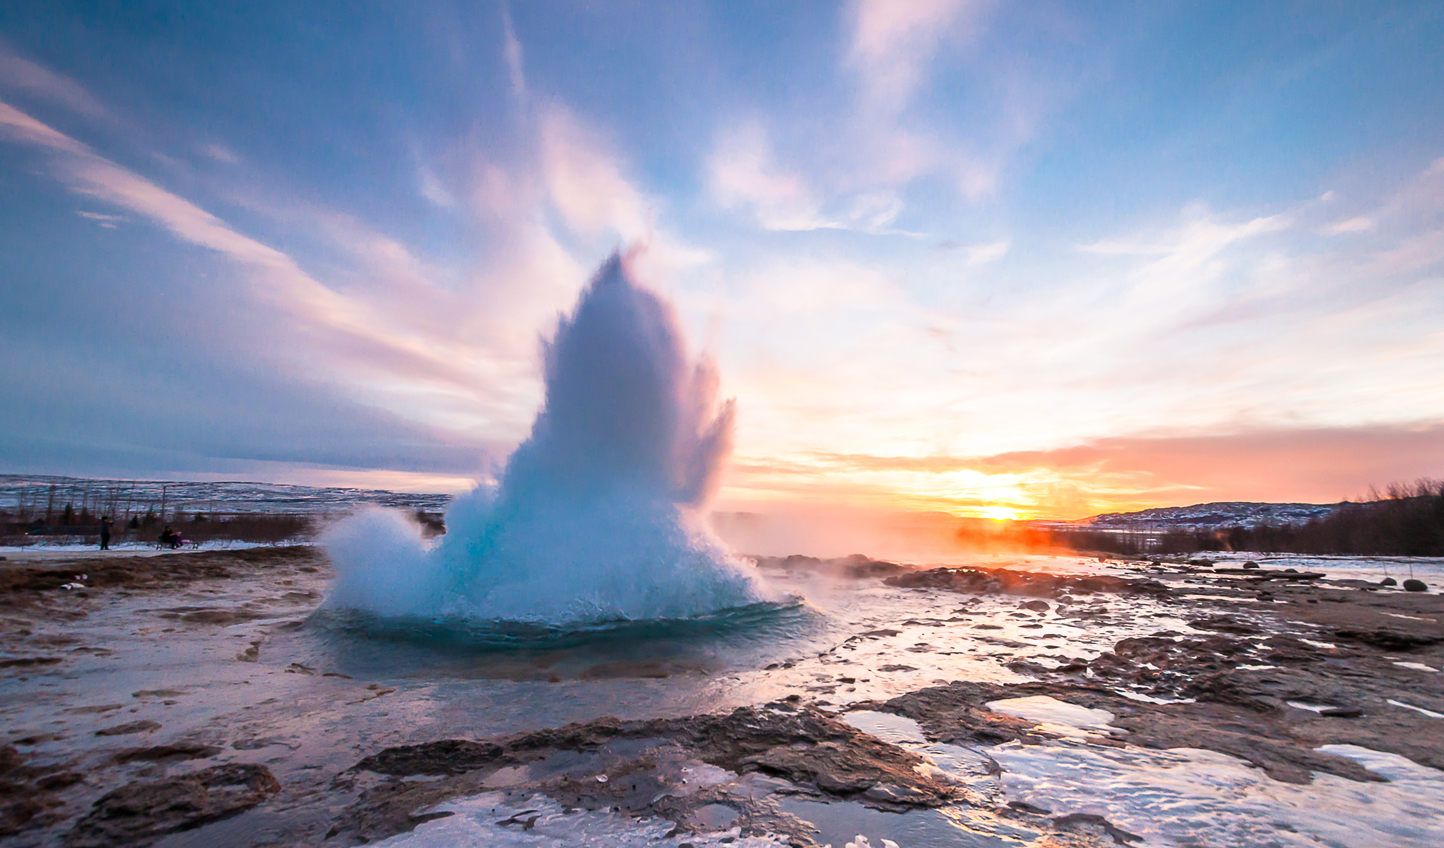 Marvel at the sight of geysers shooting up all around you